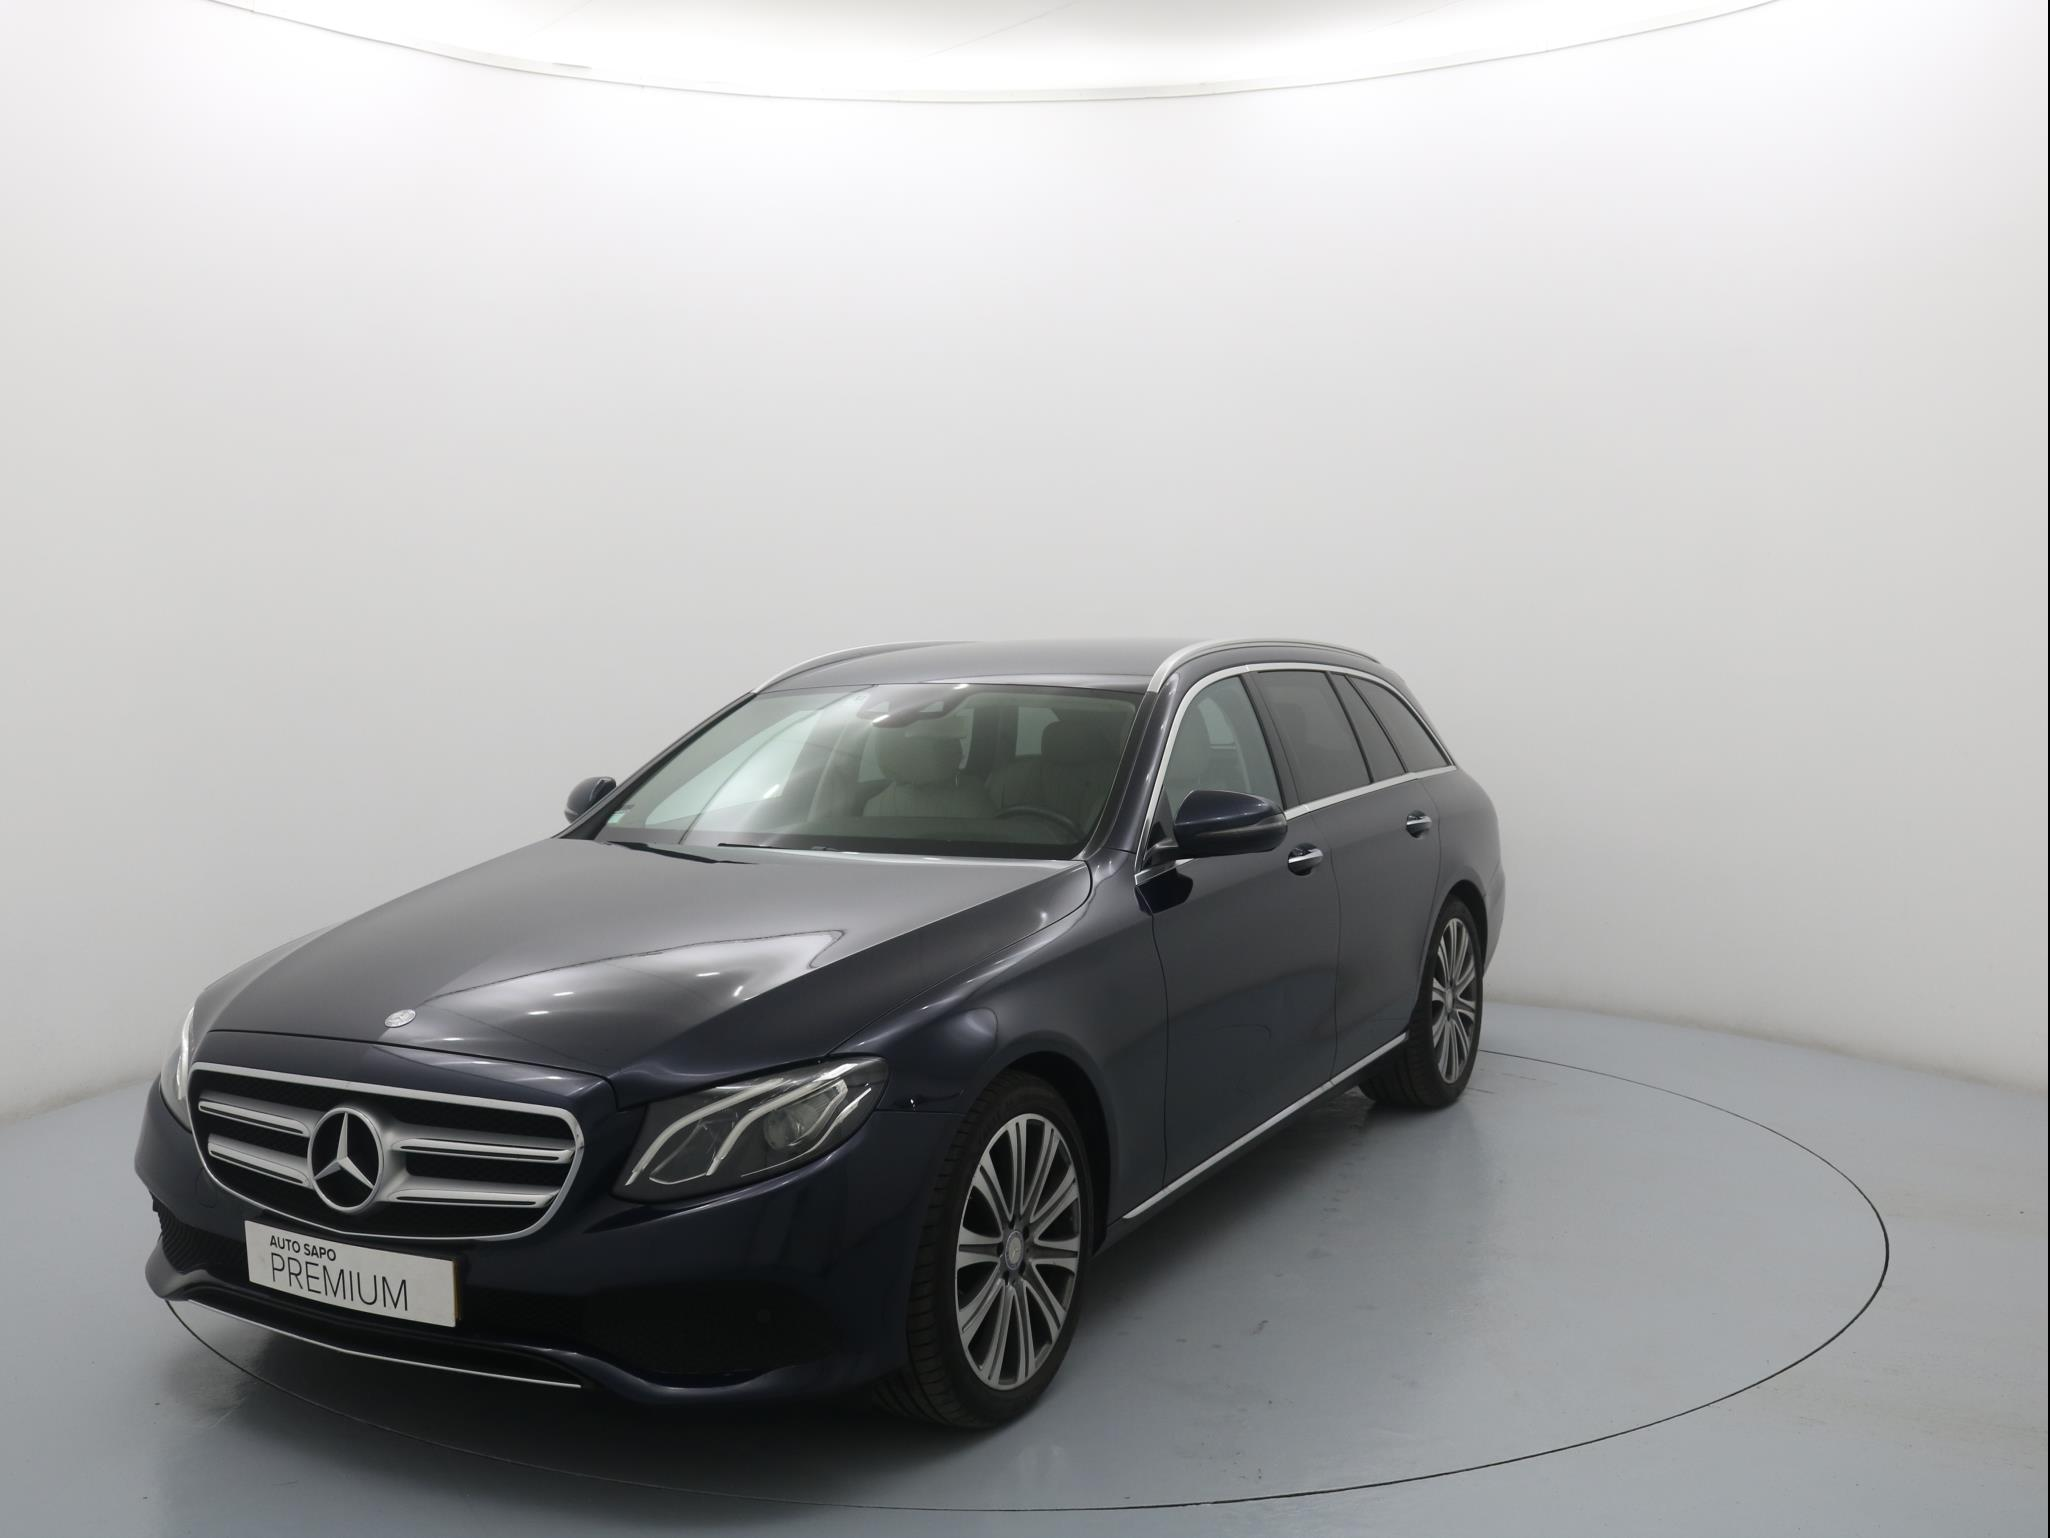 Mercedes-Benz Classe E 220d  Avantgarde Station  Cx9 194cv